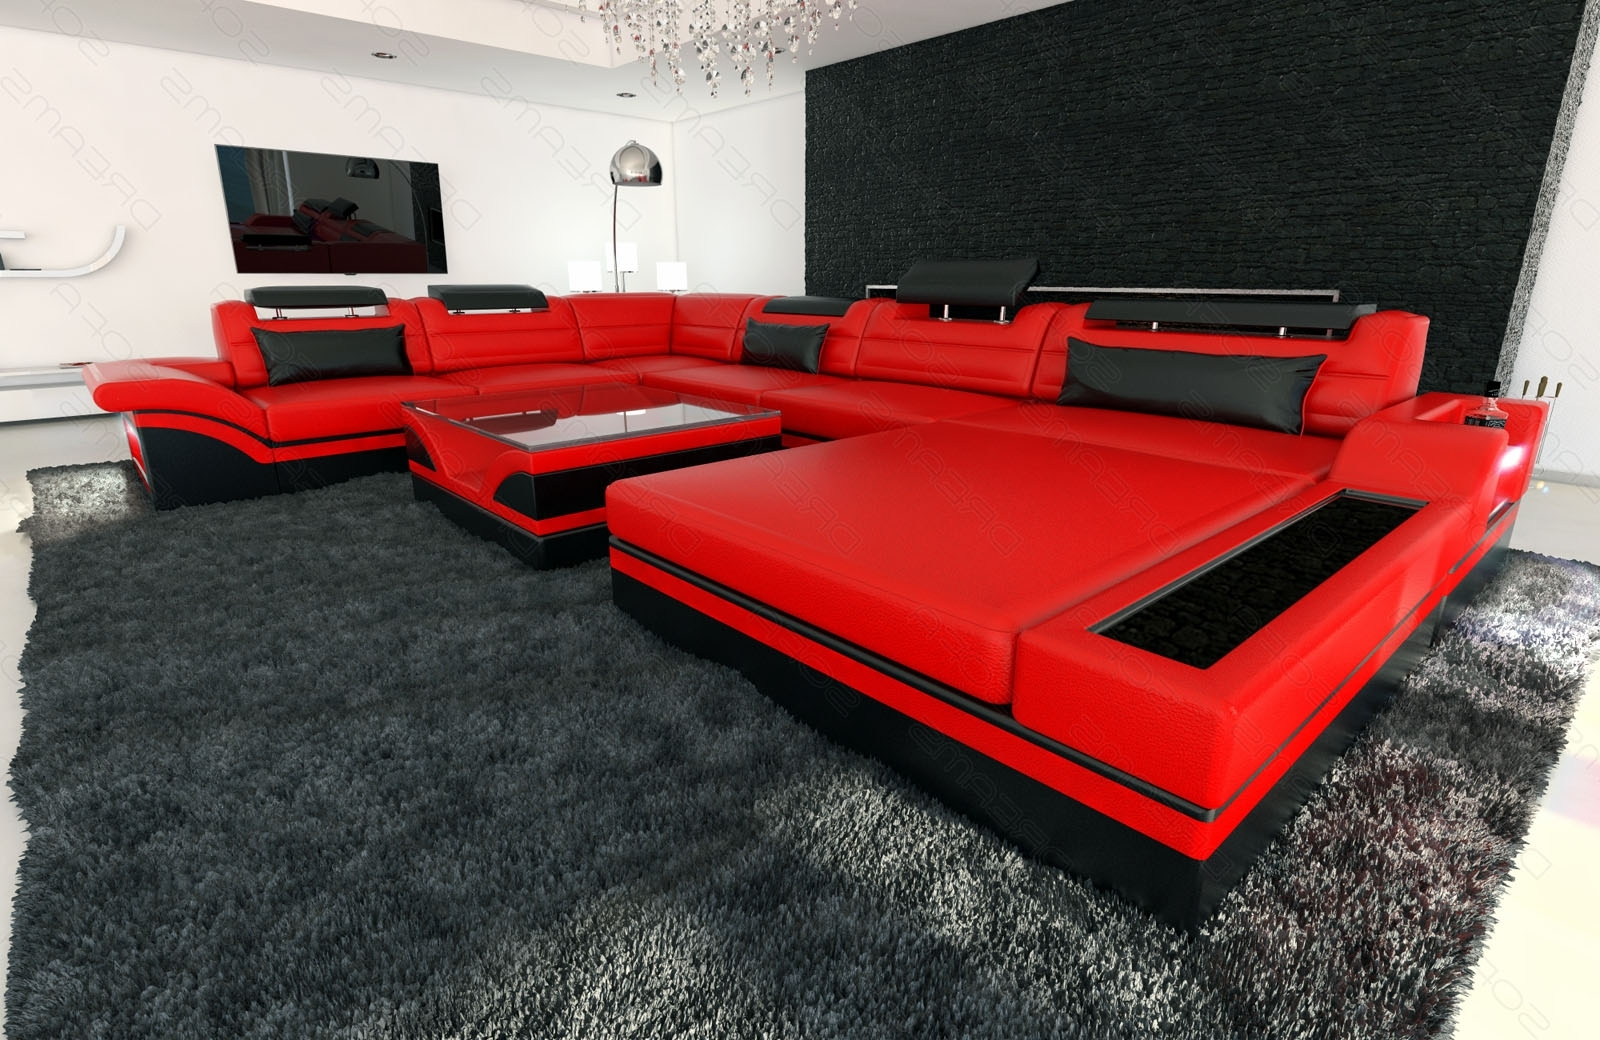 Design Sectional Sofa Mezzo Xxl With Led Lights Red Black (Gallery 3 of 20)